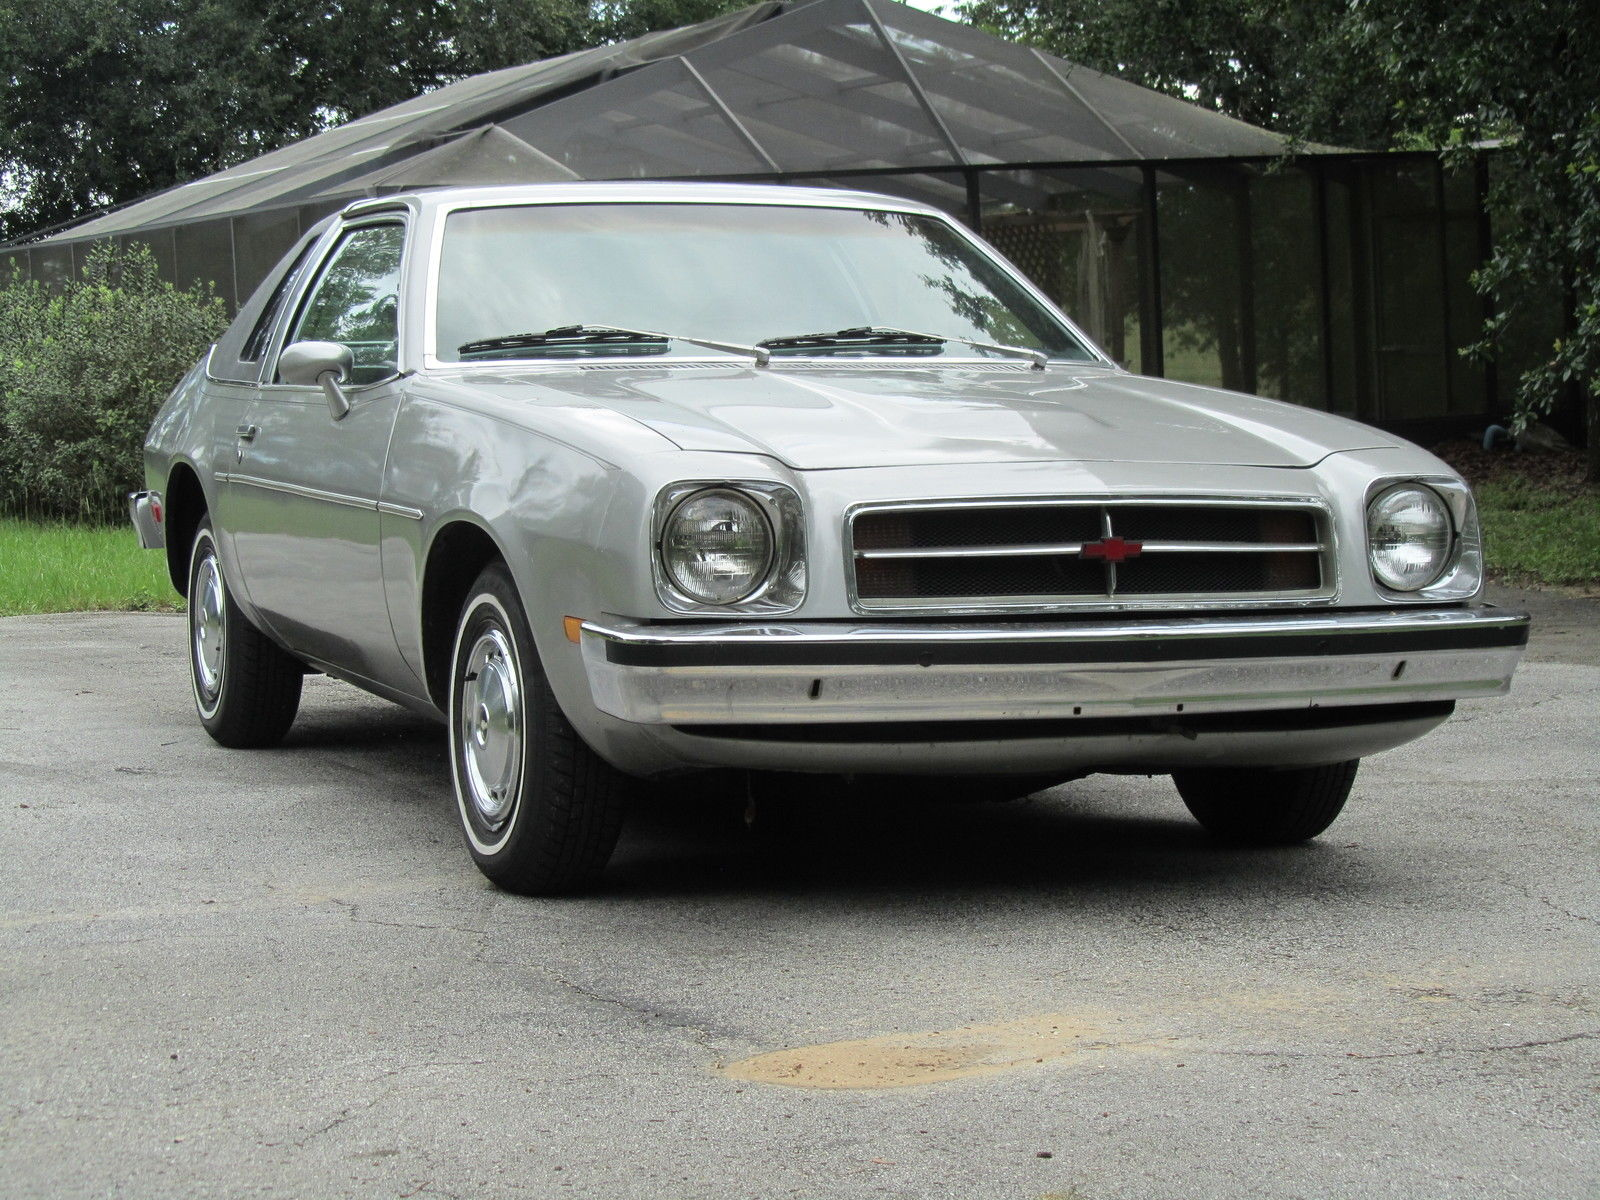 hight resolution of this 1980 chevrolet monza towne coupe needs to be restified when have you seen one this clean recently